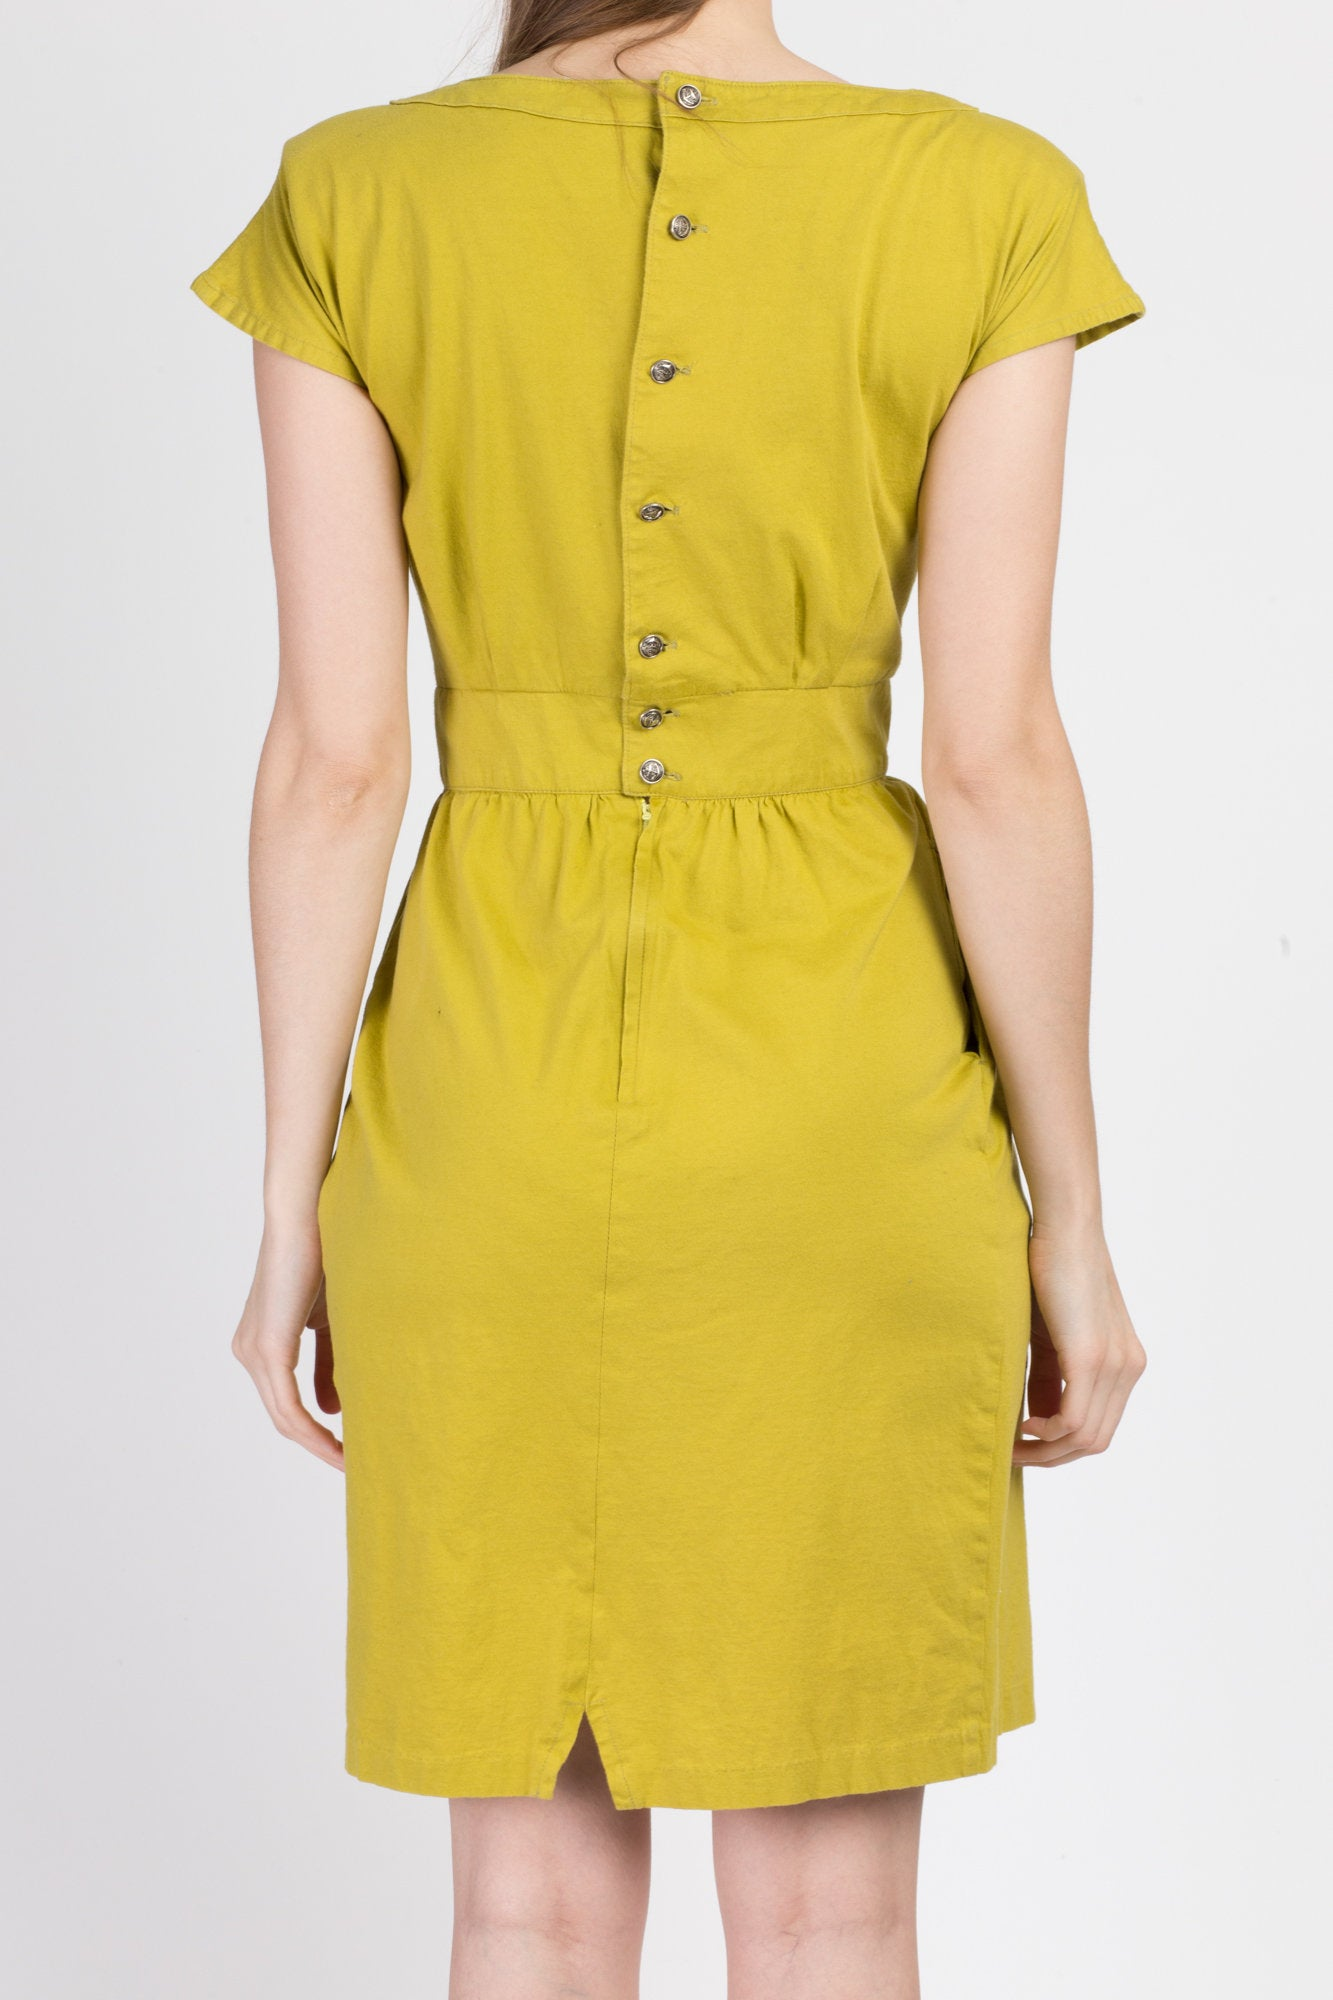 80s Chartreuse Mini Fitted Waist Sheath Dress - Small